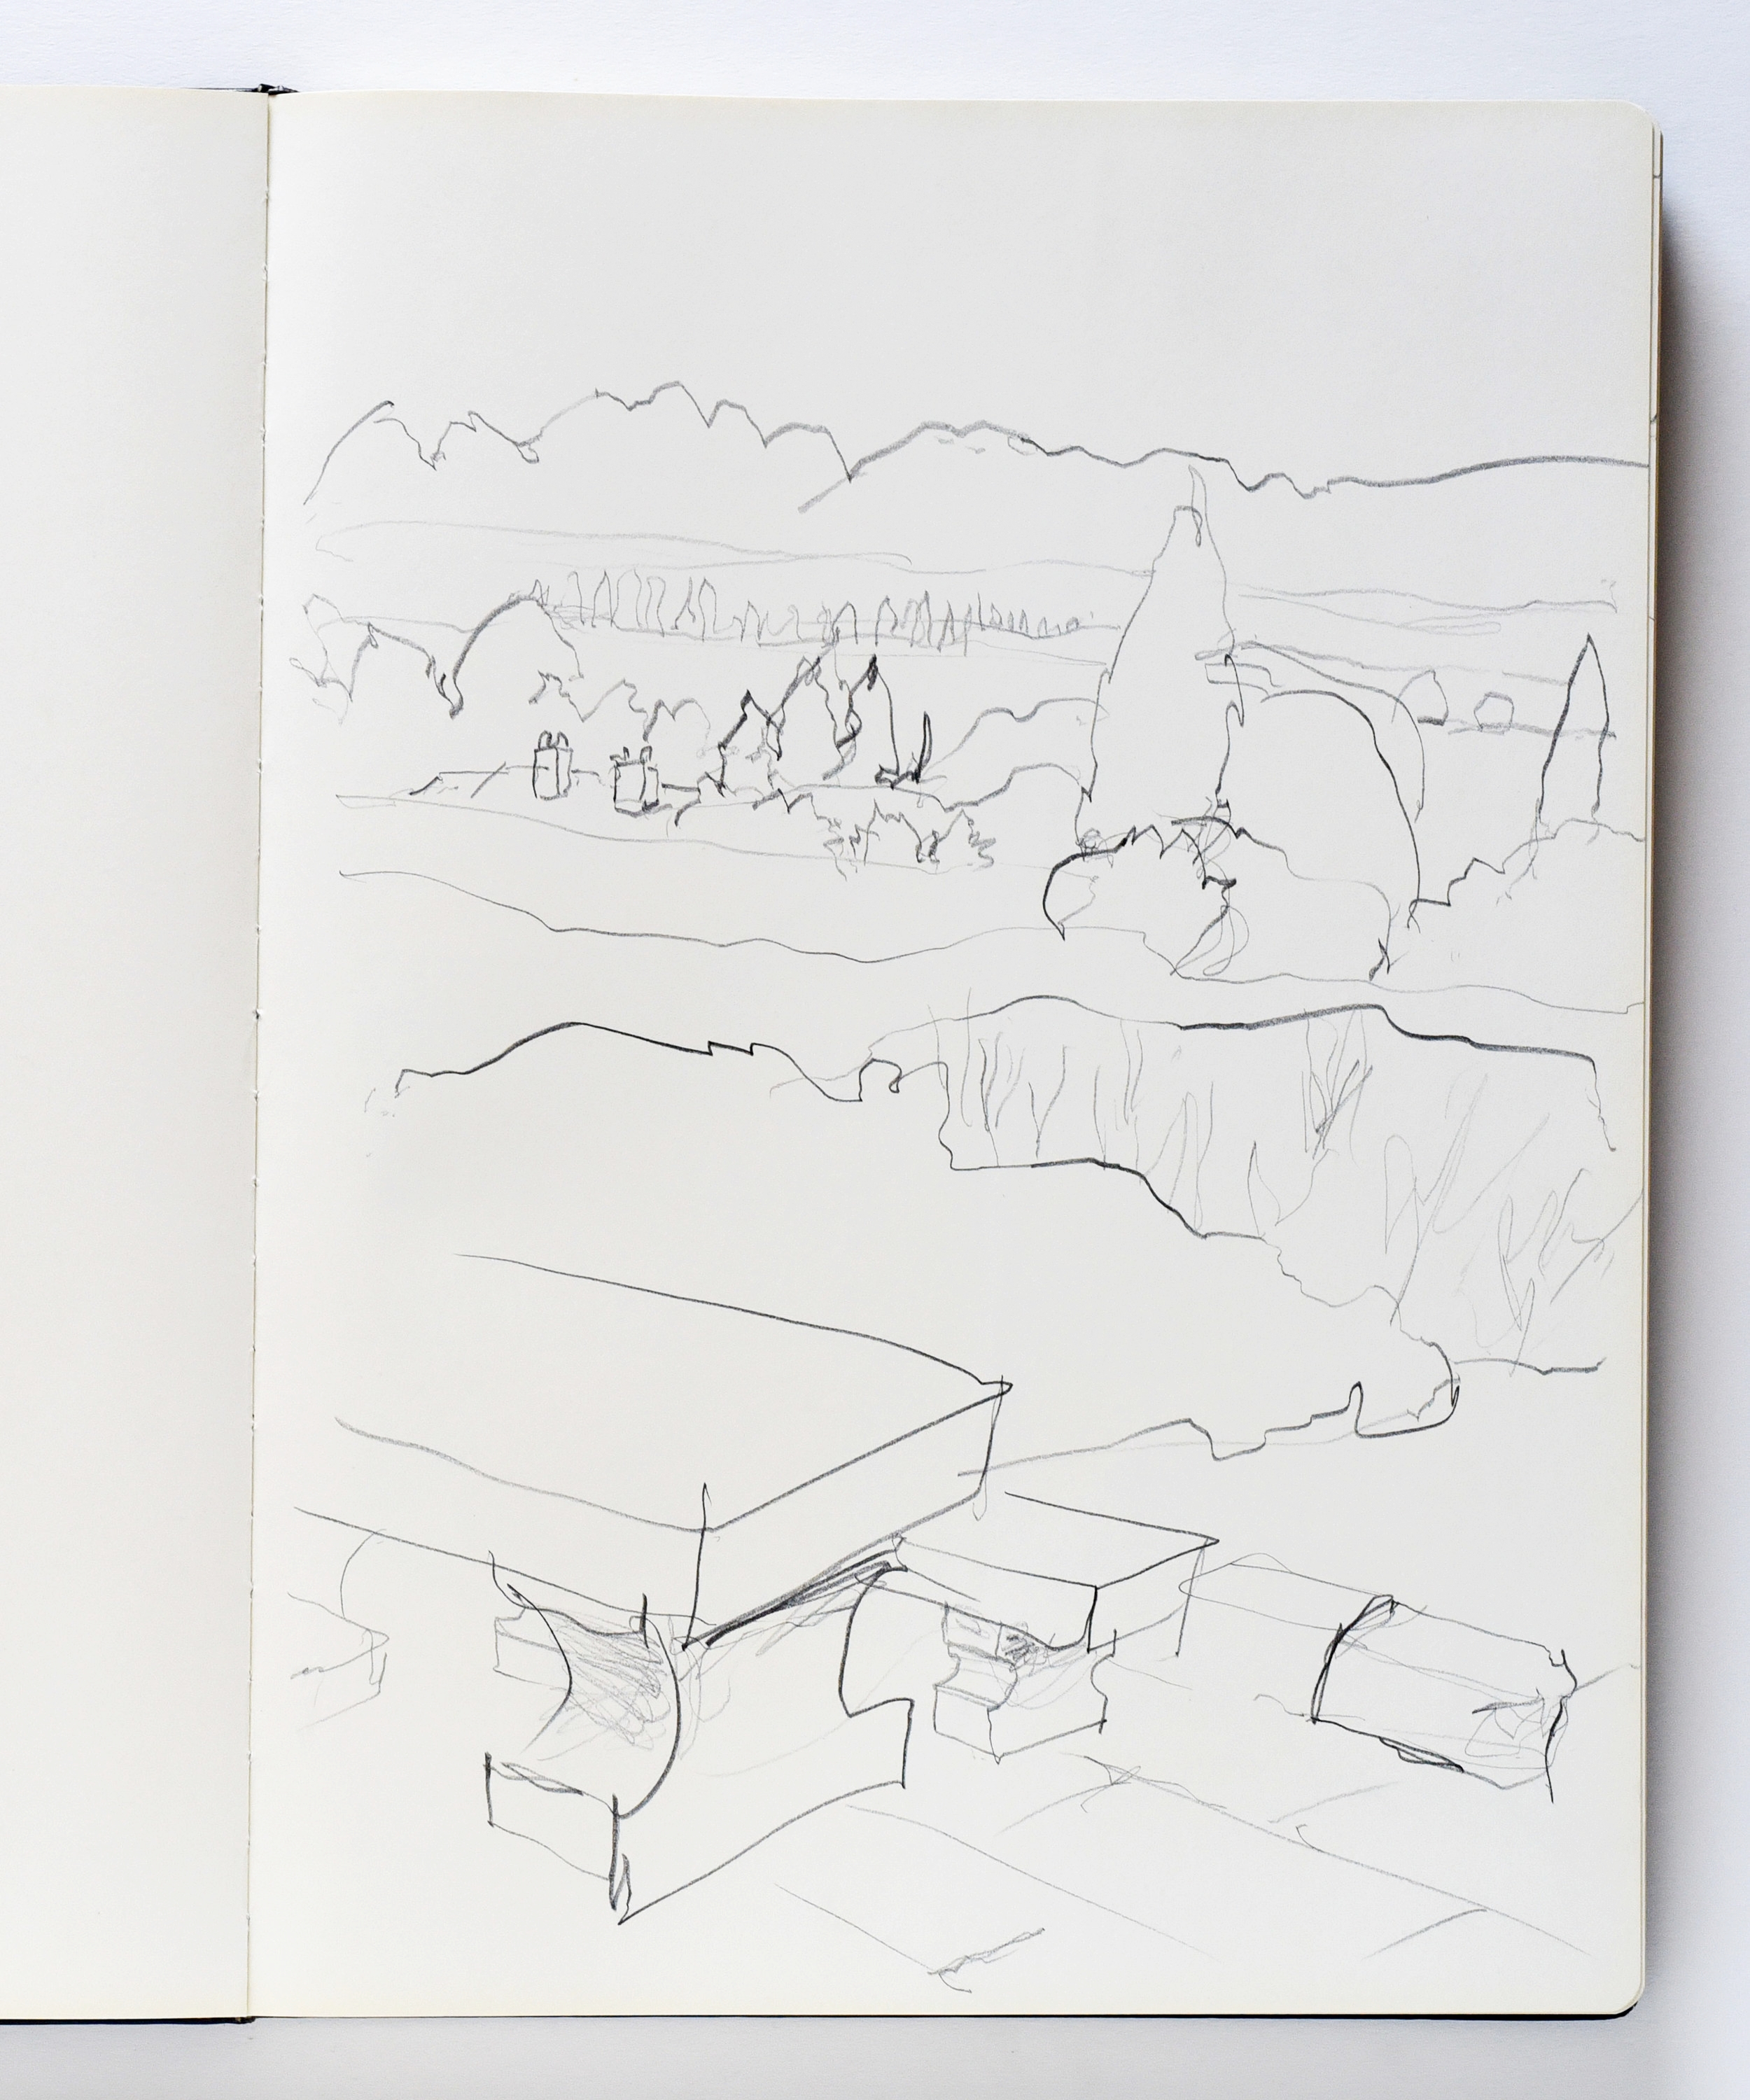 Line drawing using pencil of the view from Mas in Saint-Rémy-de-Provence